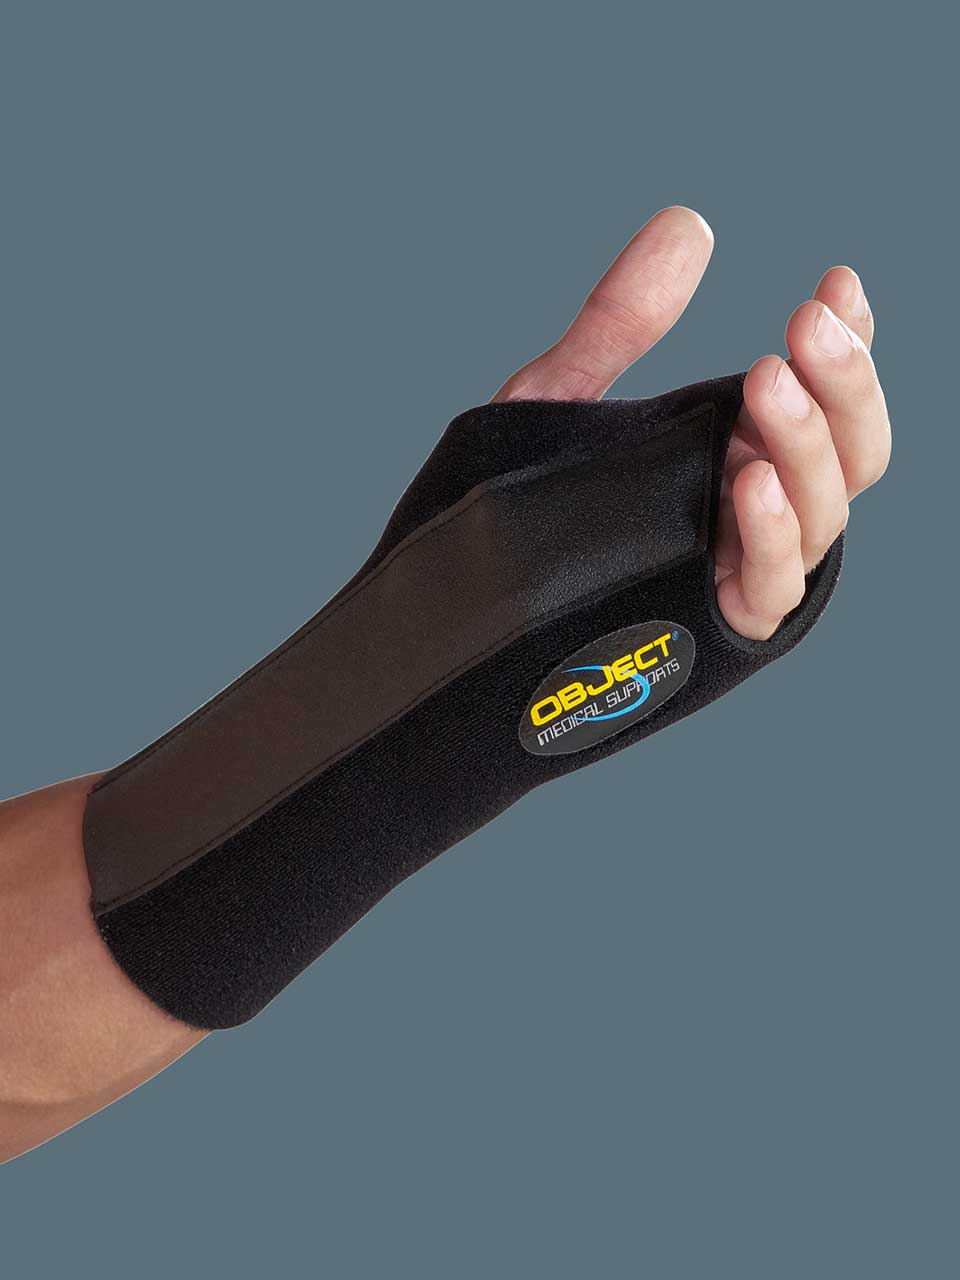 OBJECT - Wrist support